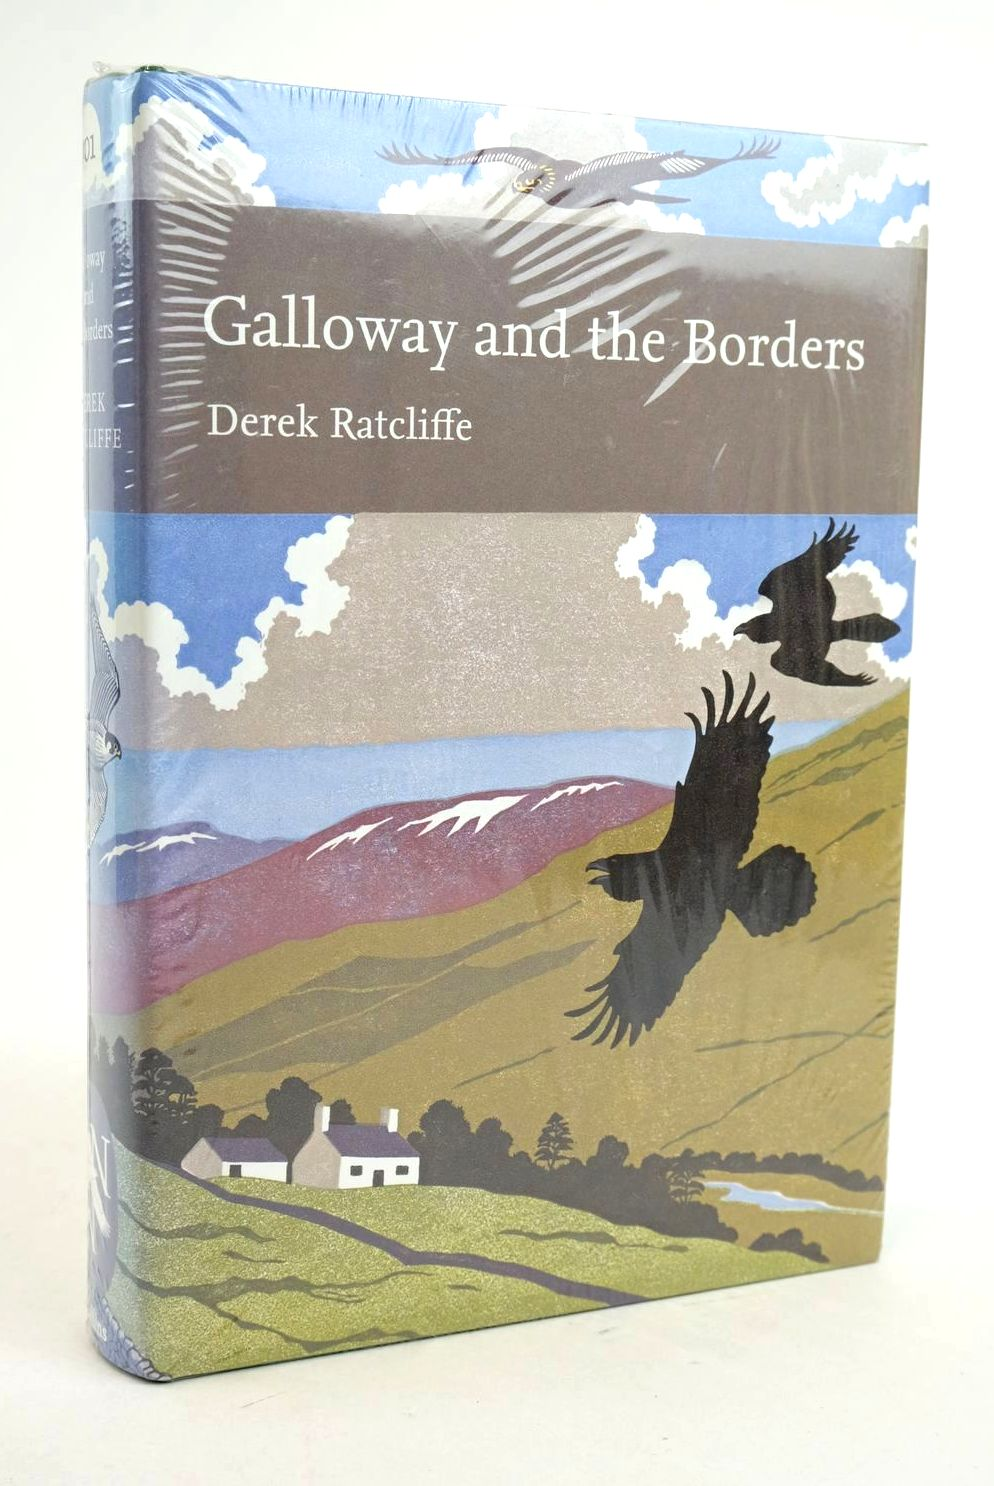 Photo of GALLOWAY AND THE BORDERS (NN 101) written by Ratcliffe, Derek published by Collins (STOCK CODE: 1319046)  for sale by Stella & Rose's Books